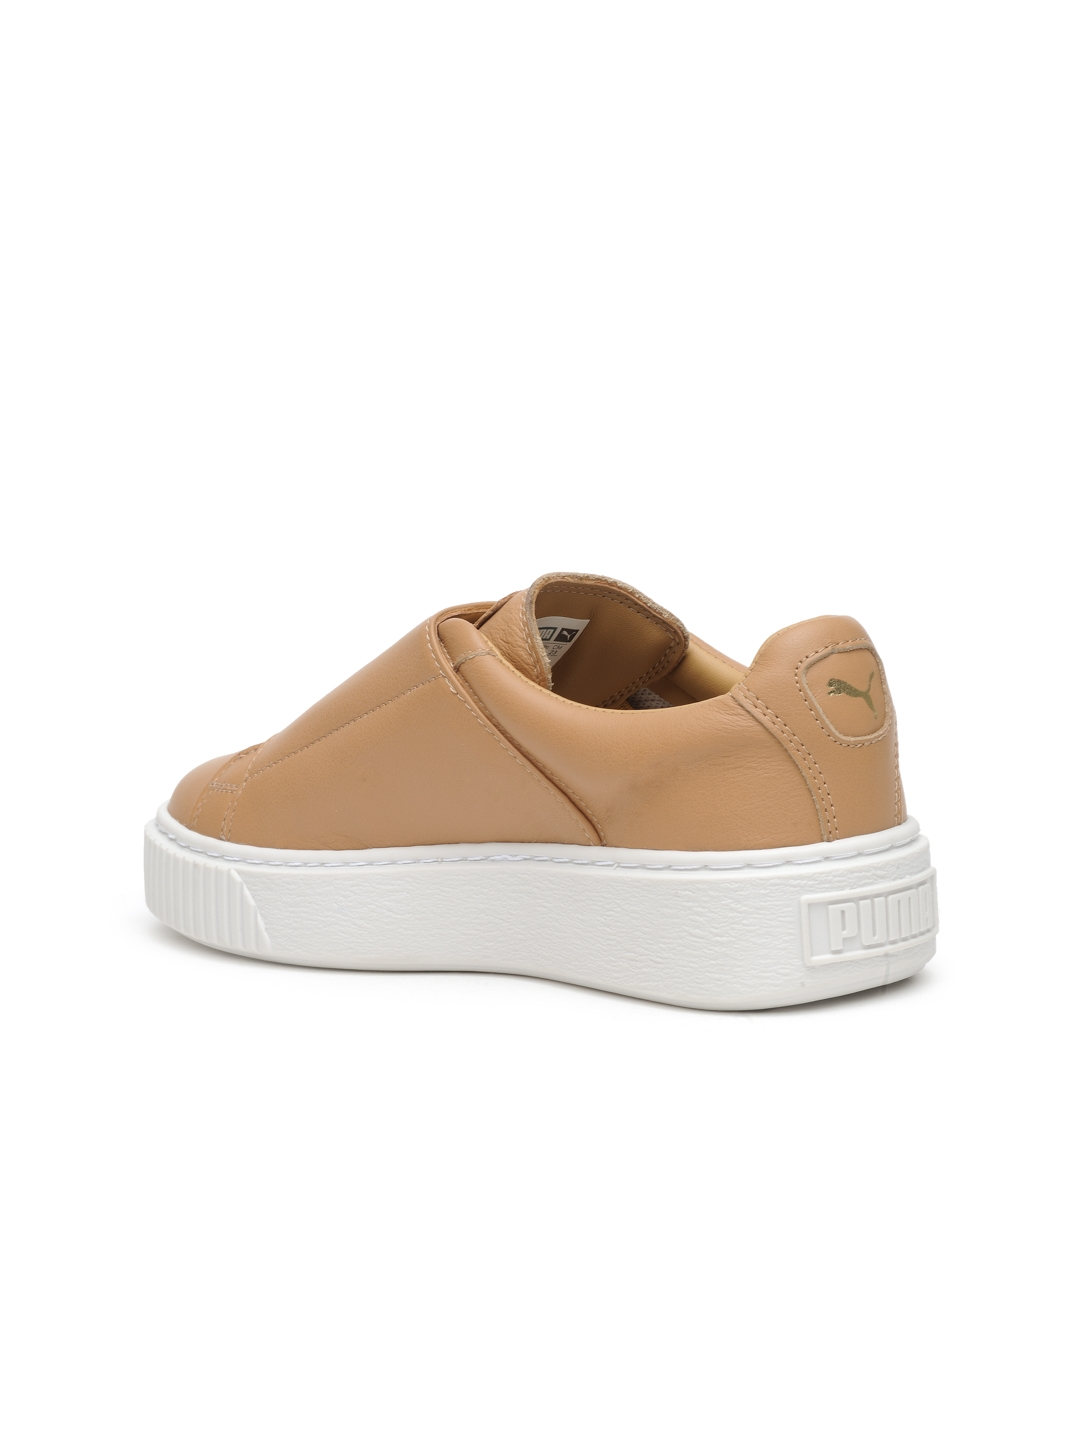 14469dda64c Puma Women Tan Brown Basket Platform Strap Wn s Leather Slip-On Sneakers